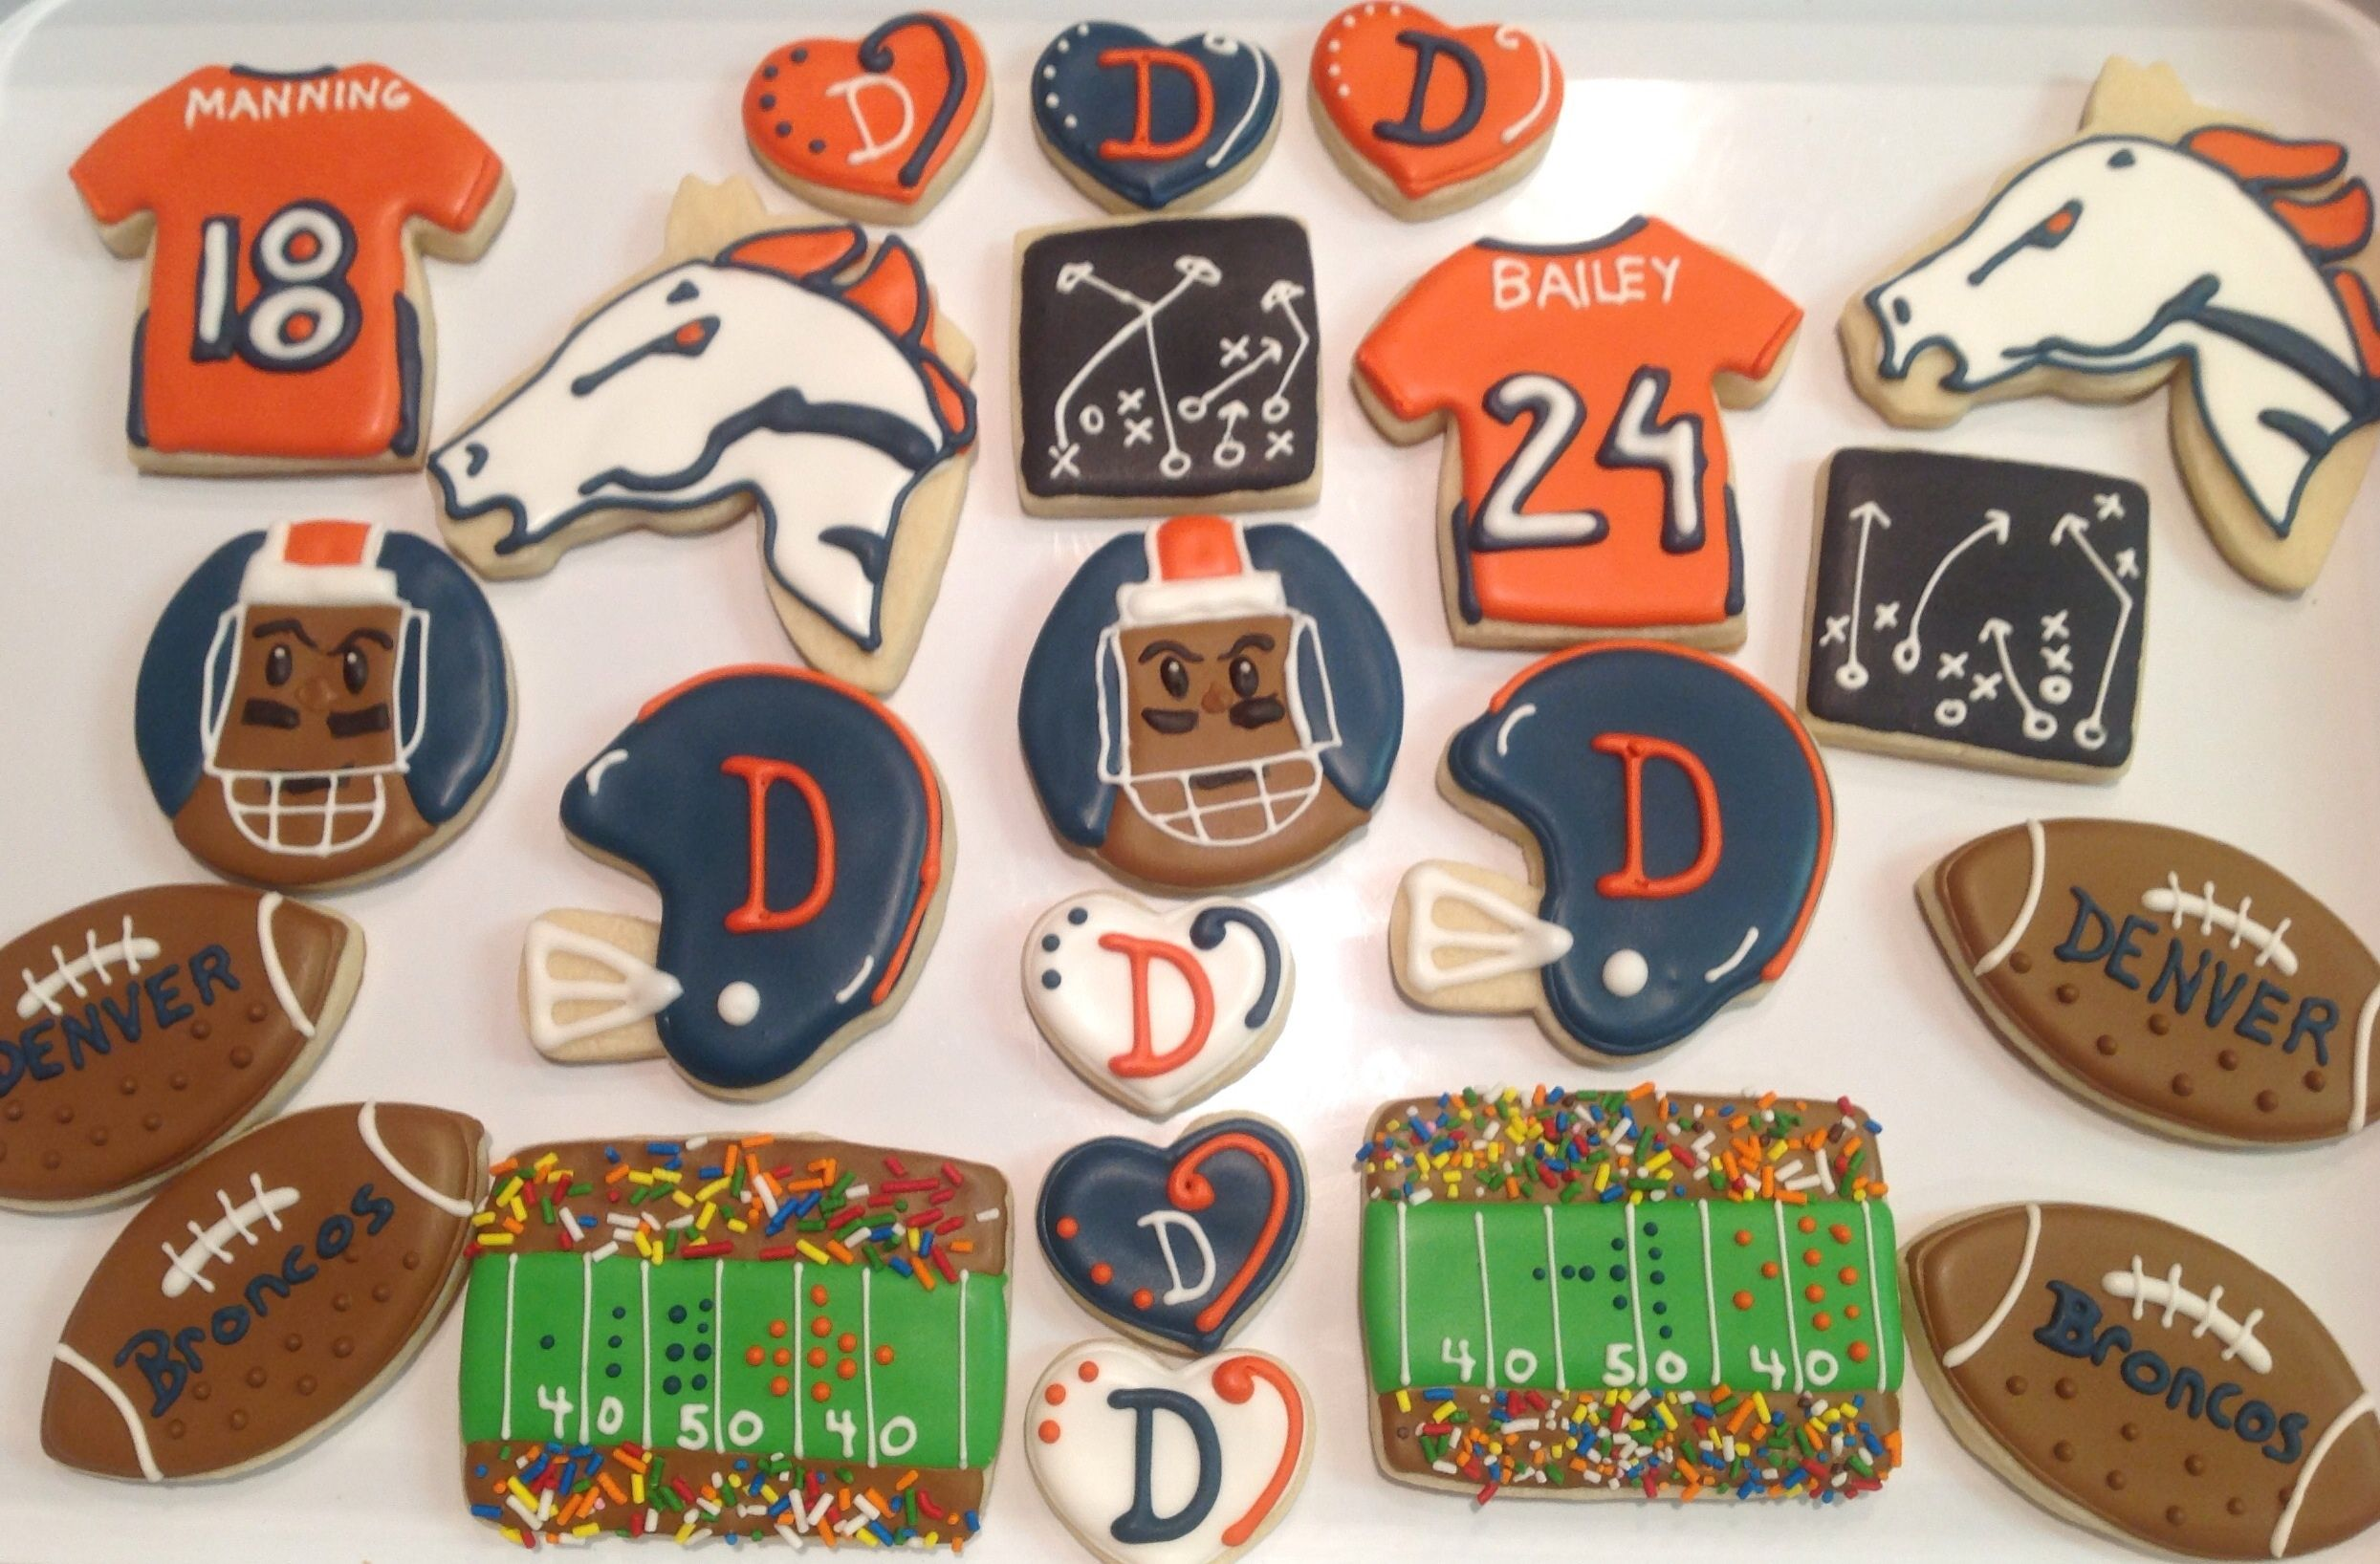 Denver Broncos Football Platter - Decorated Sugar Cookies by I Am